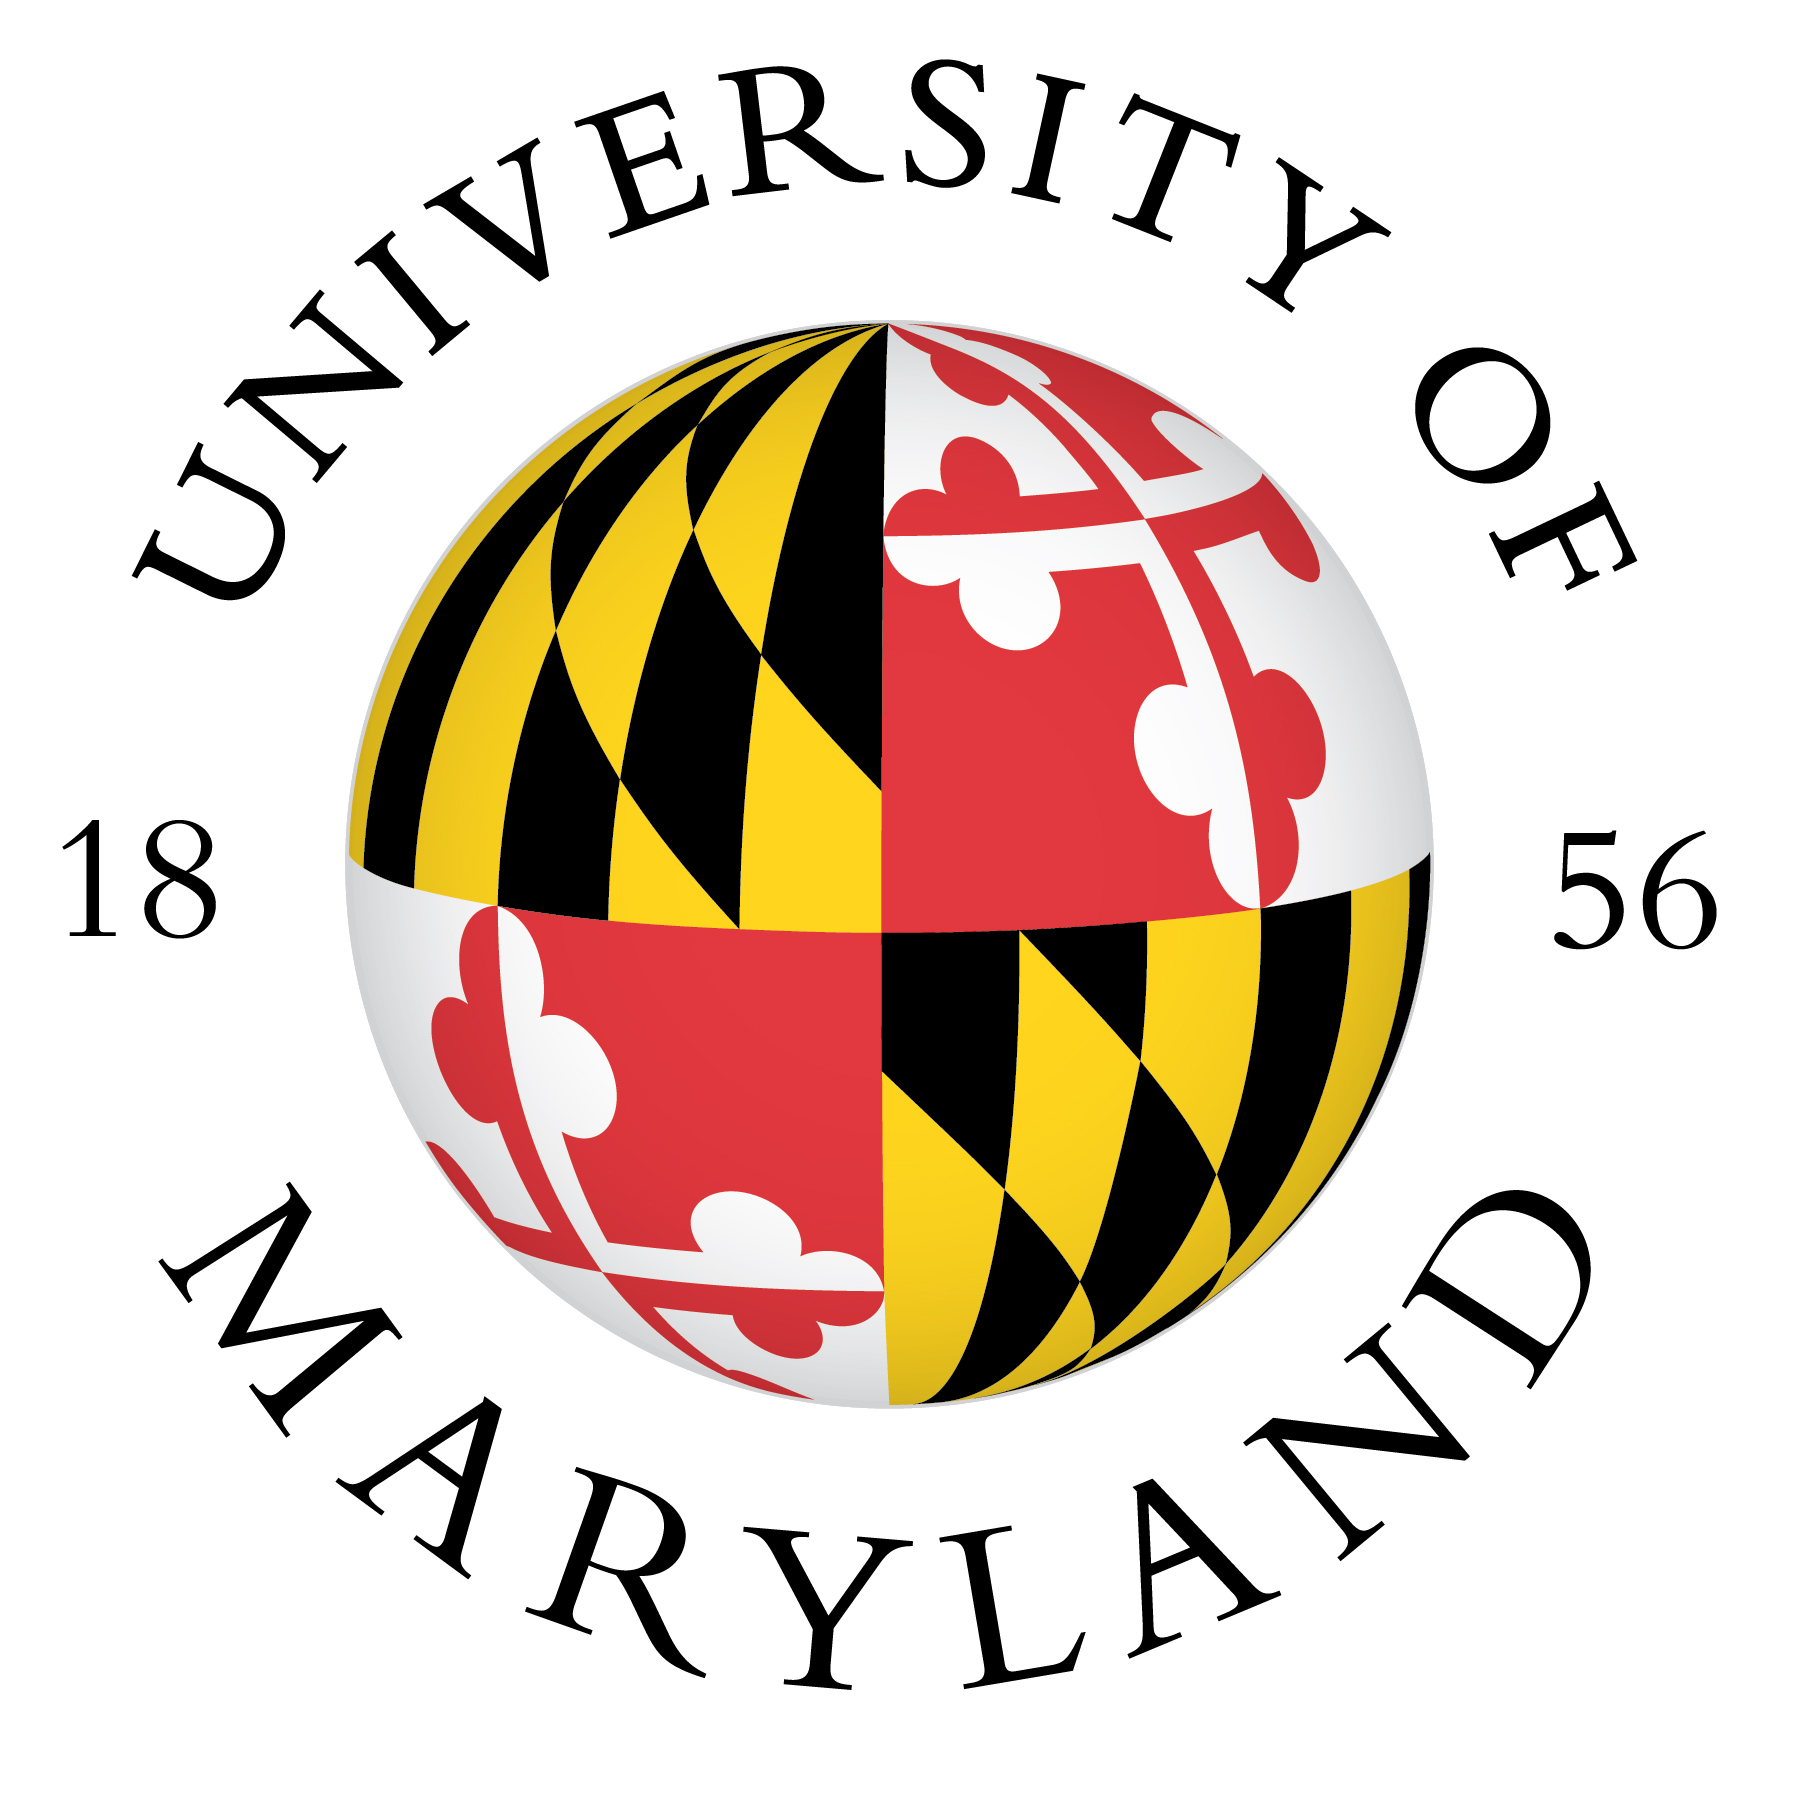 University of Maryland, Bachelor of Science in Nutrition and Food Science, cum laude -